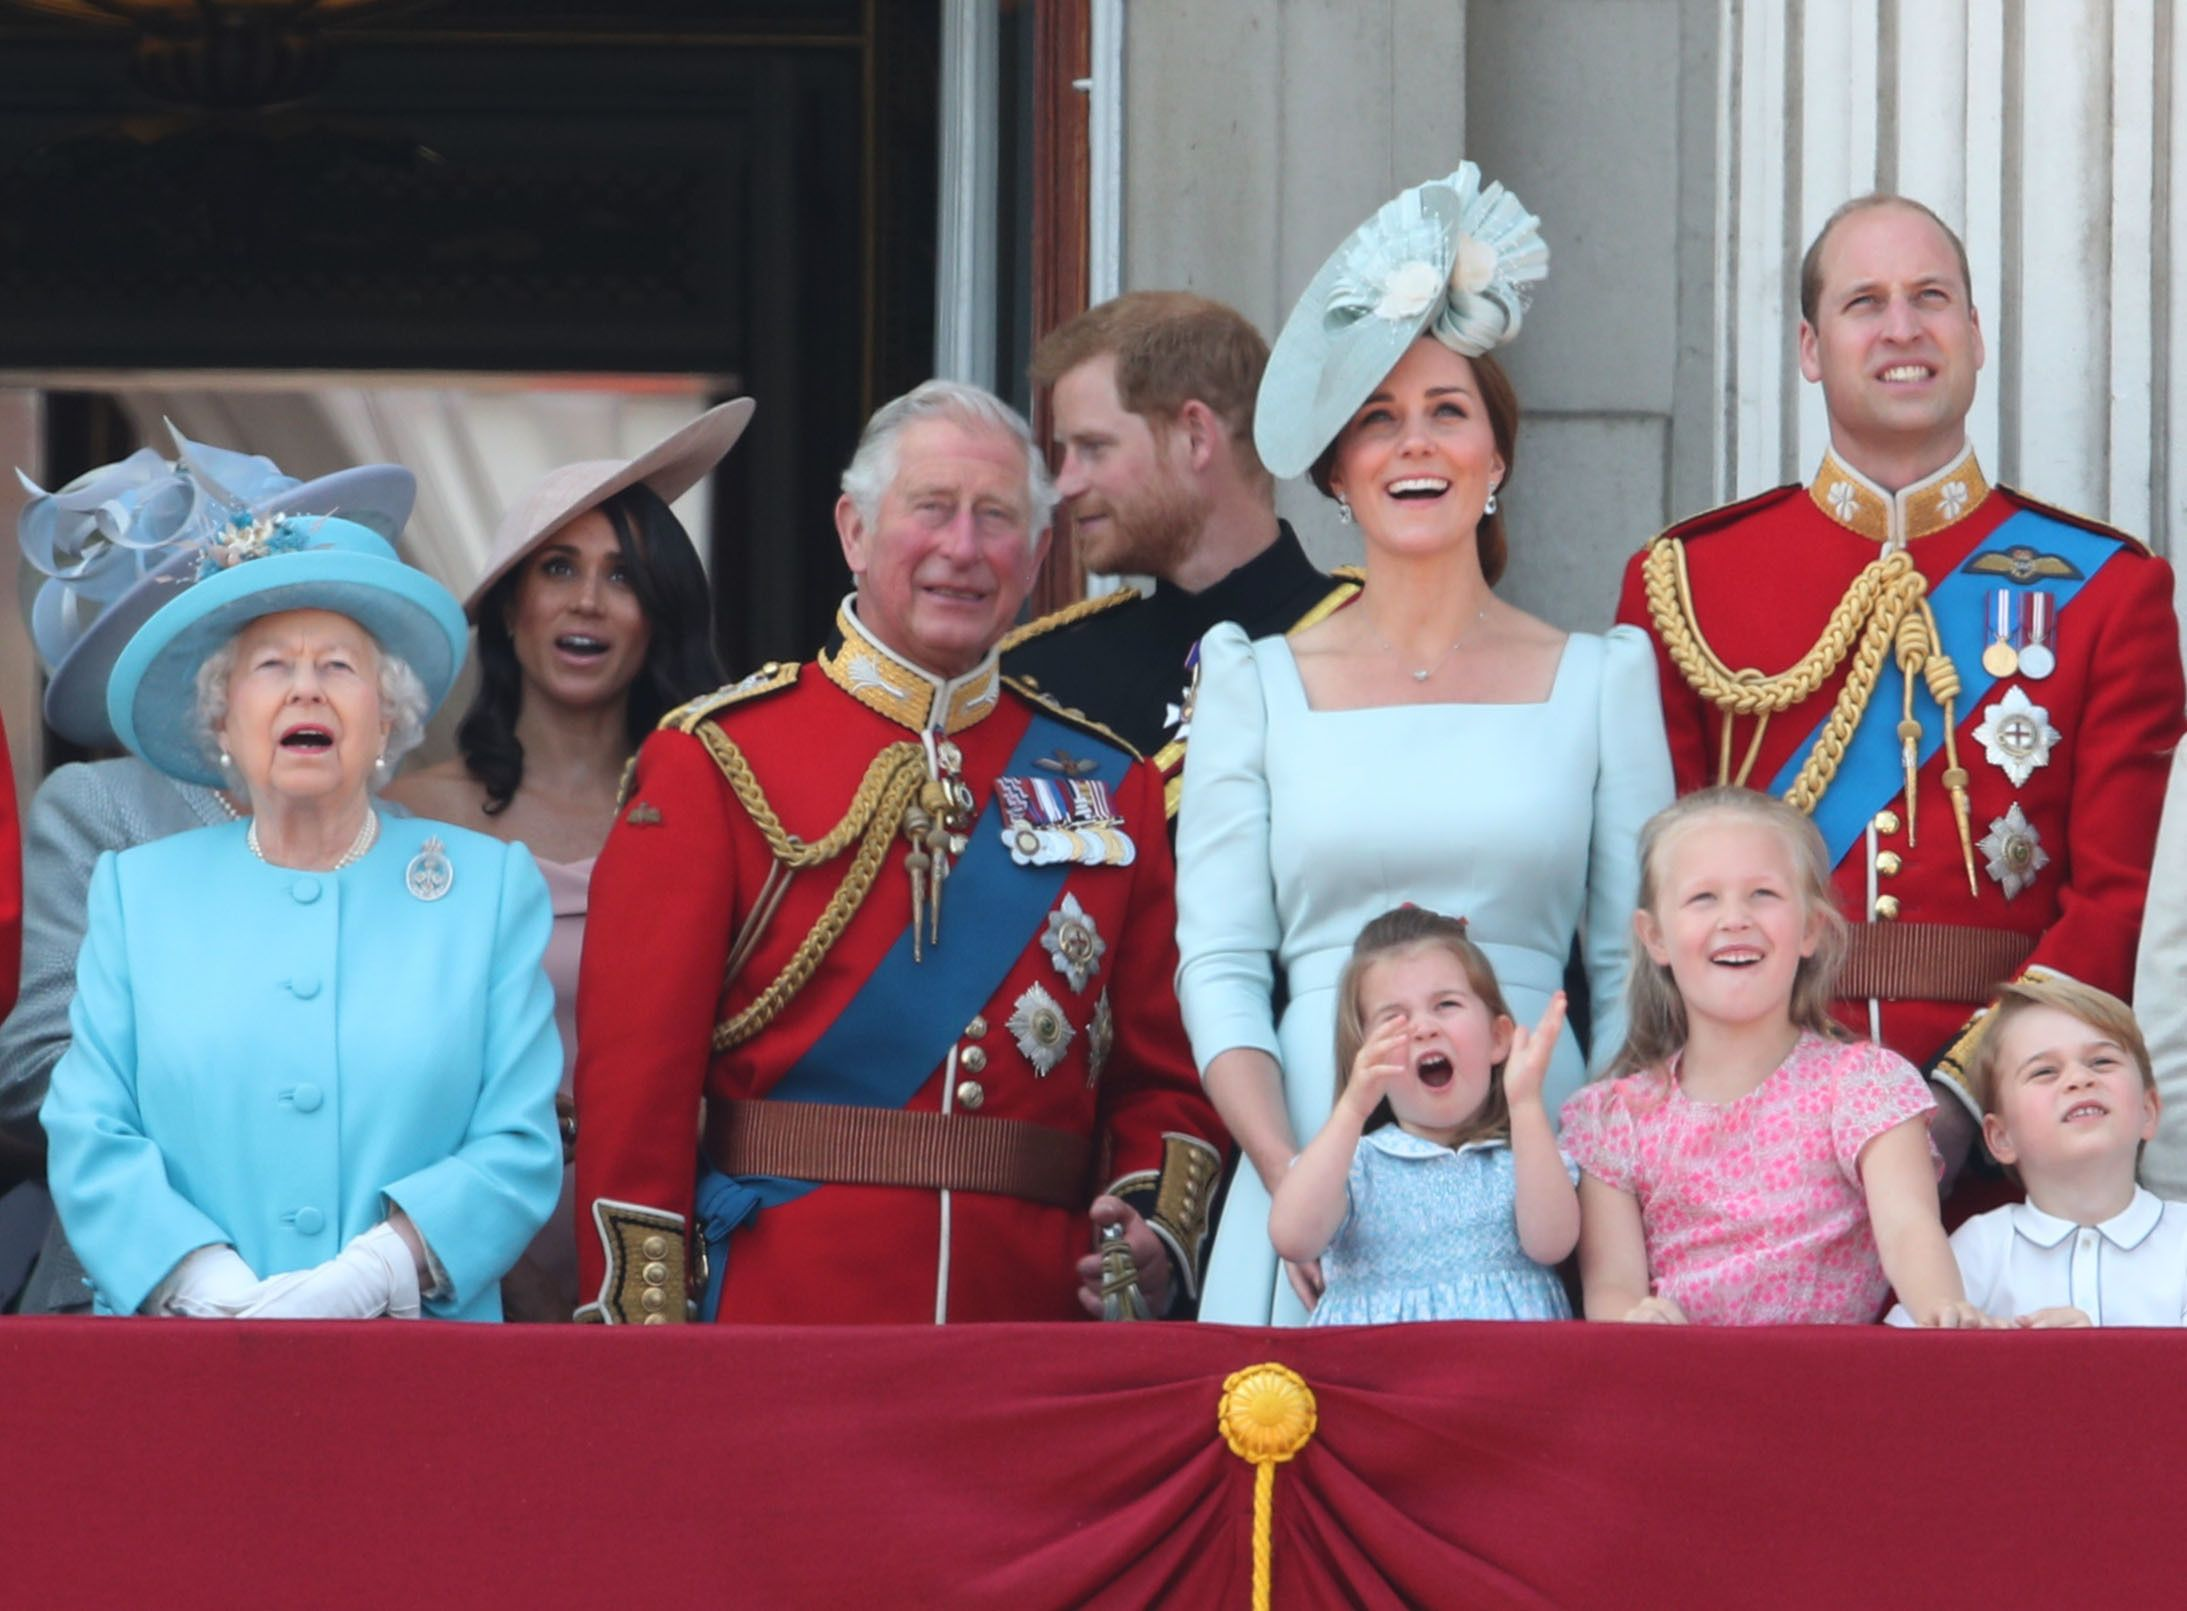 The Royal family on the balcony of Buckingham Palace, in central London,  June 09, 2018 | Photo: Getty Images